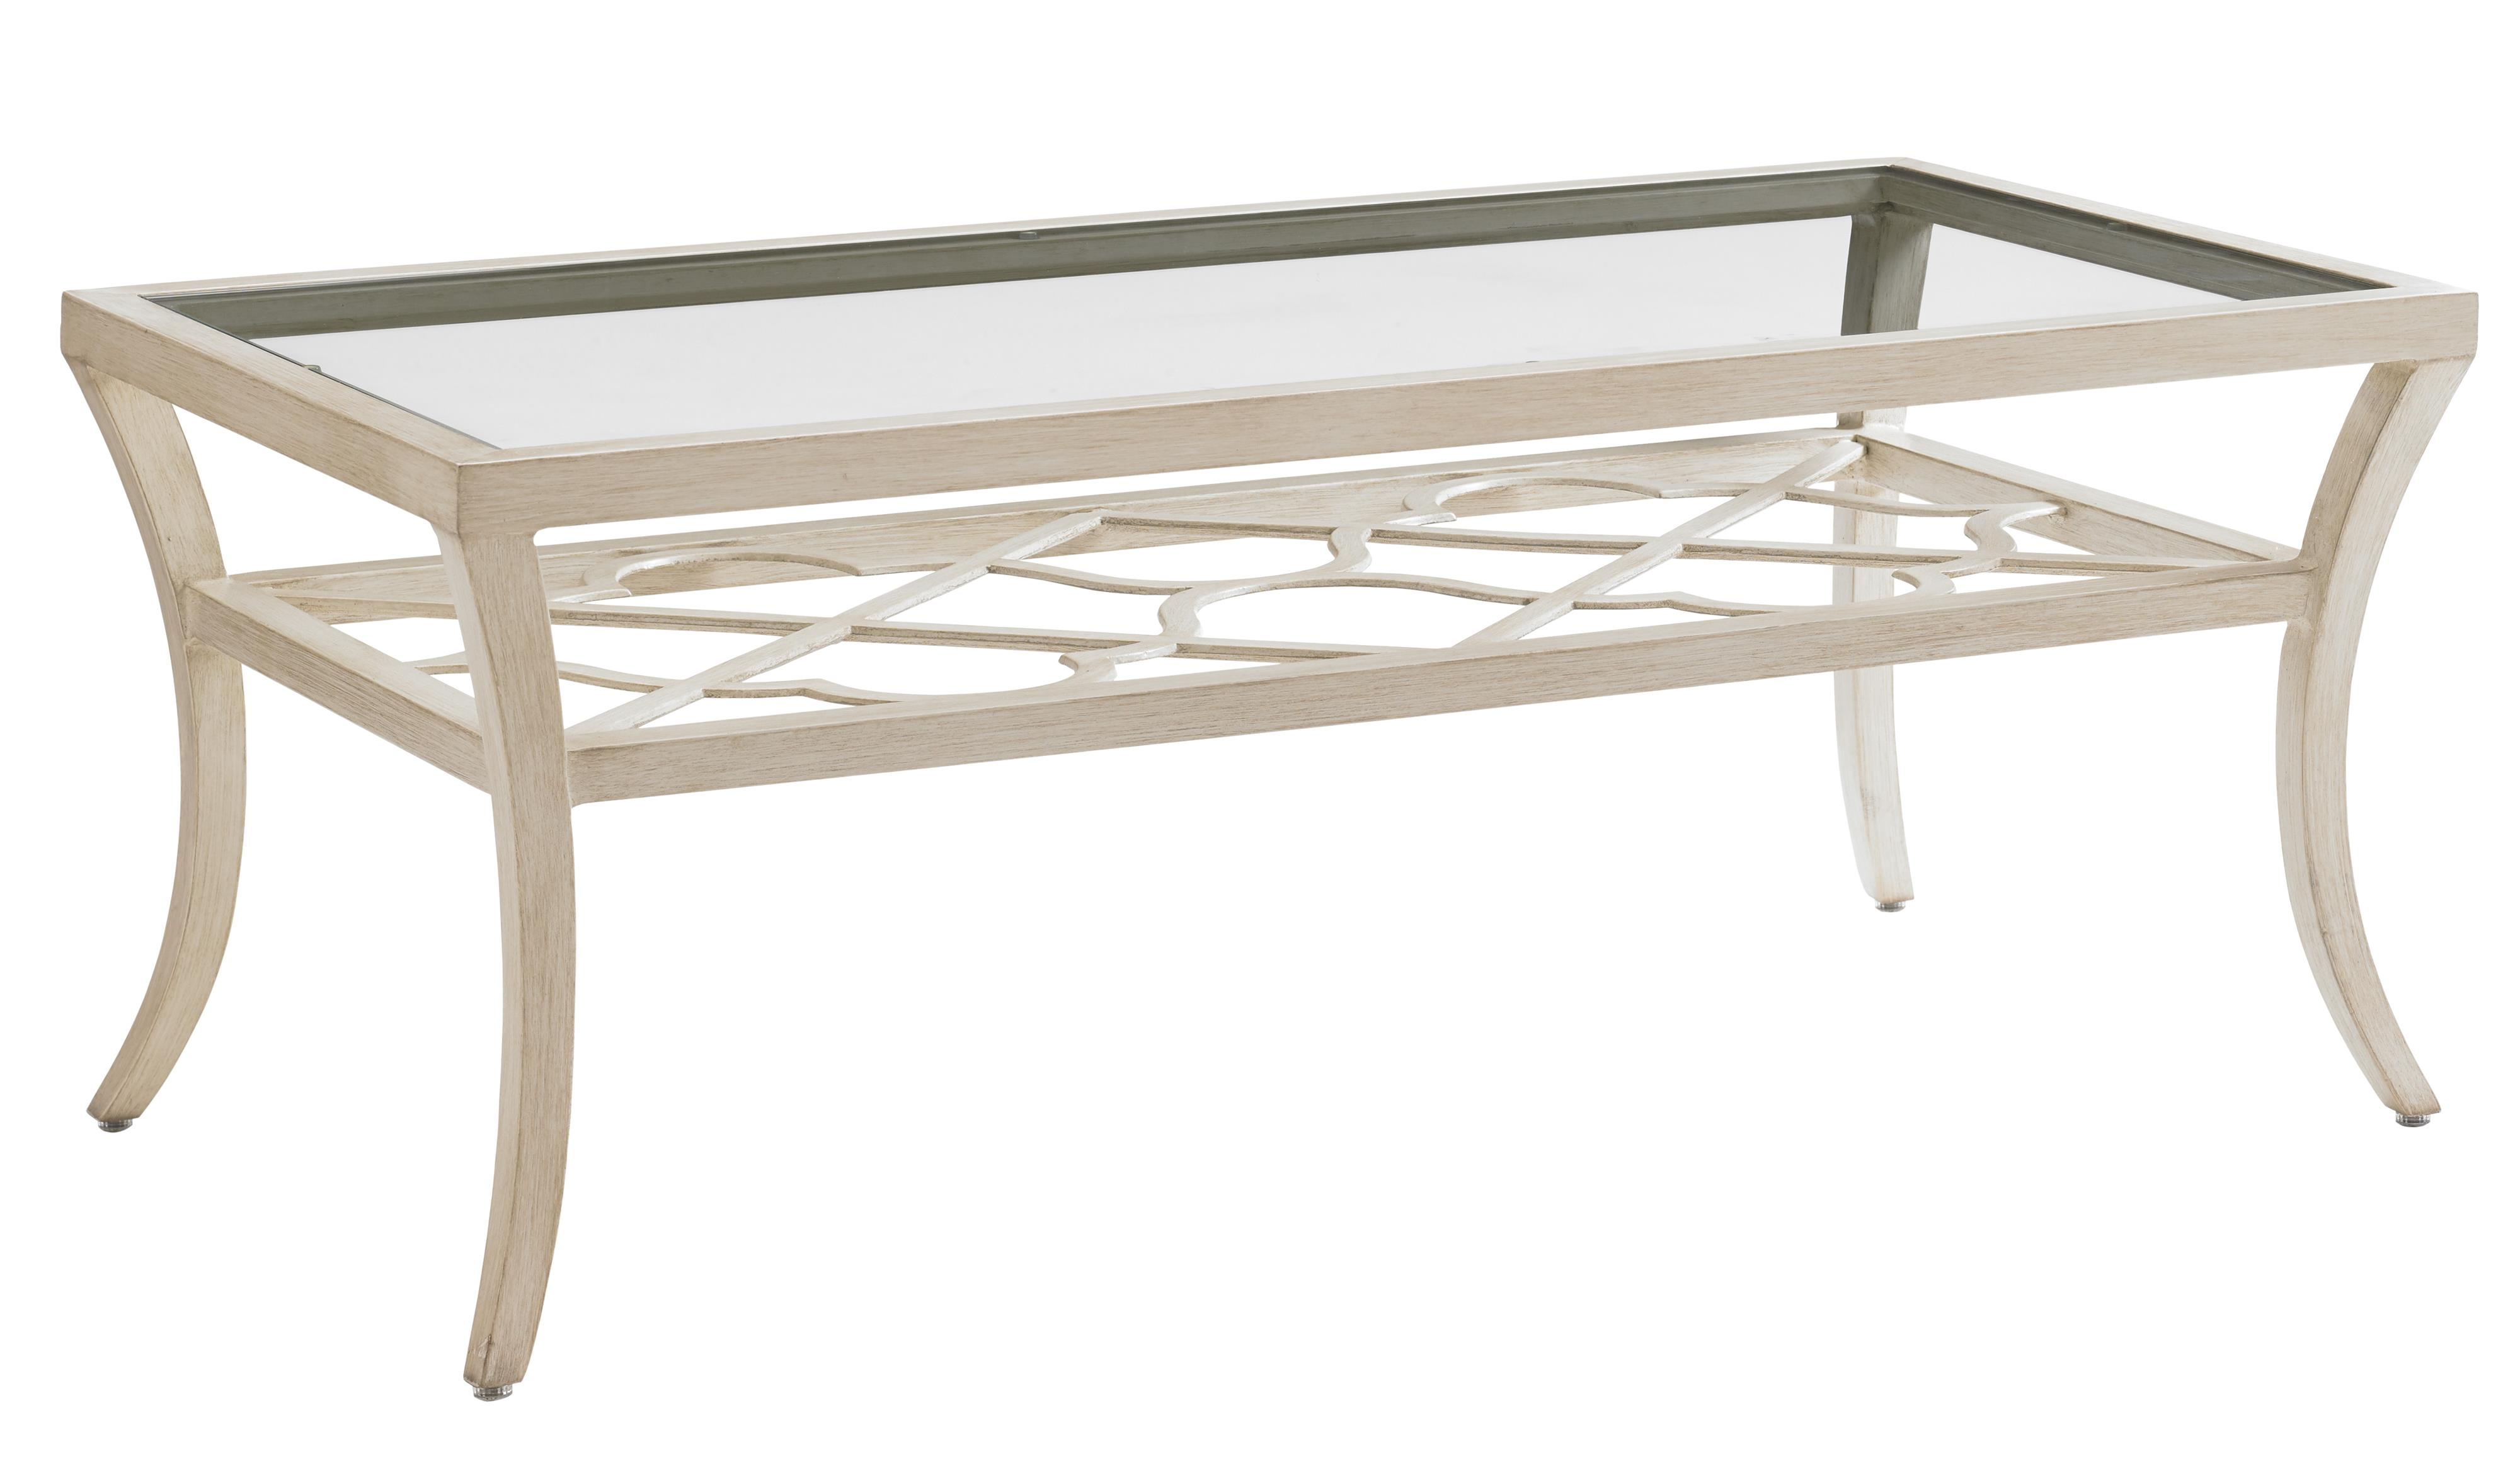 Misty Garden Rectangular Cocktail Table with Inset Glass by Tommy Bahama Outdoor Living at Baer's Furniture